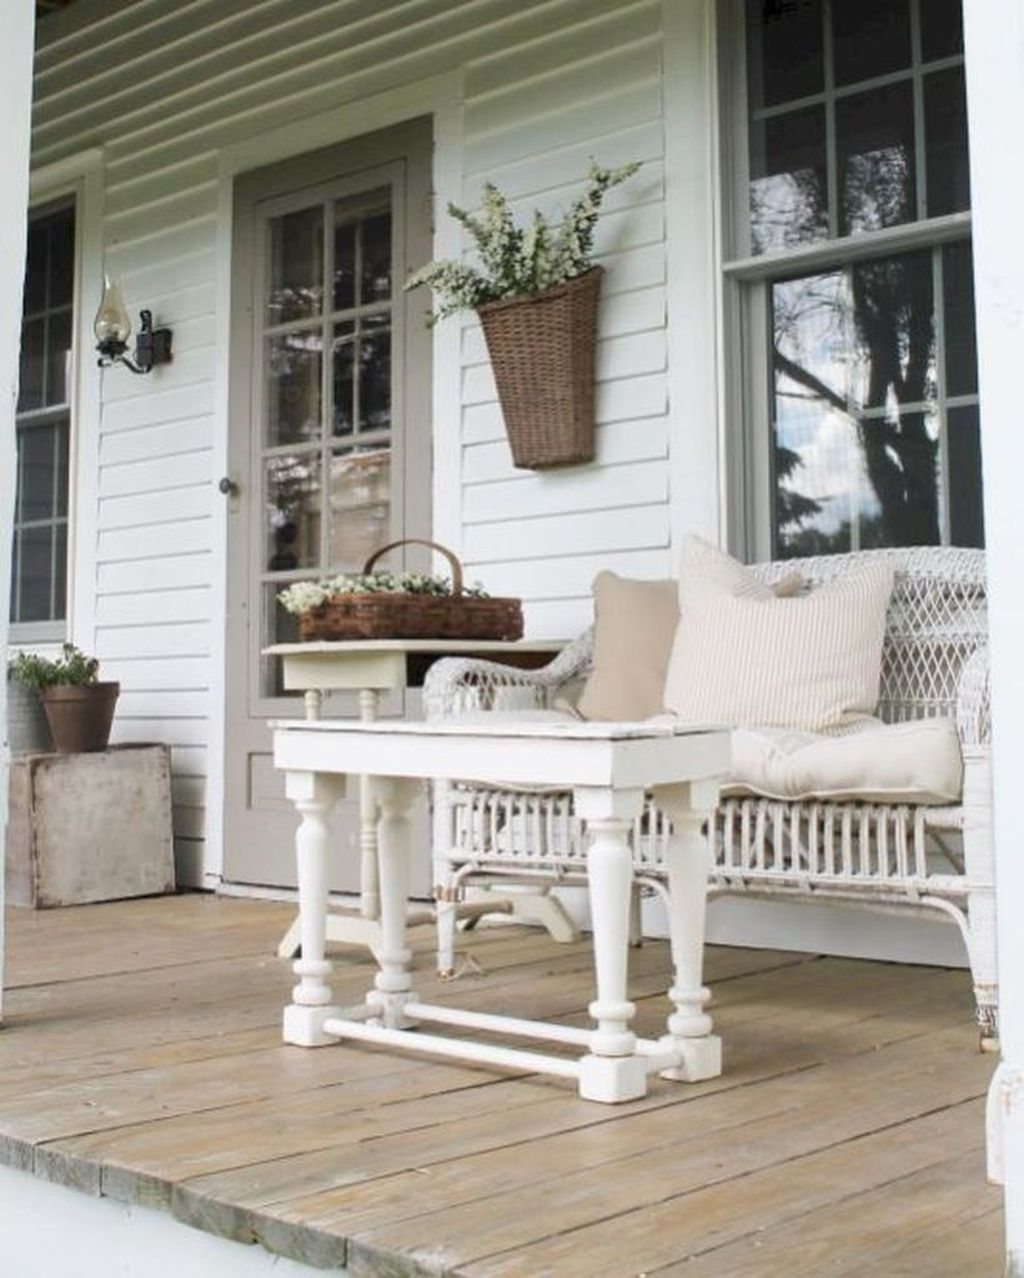 The Best Front Porch Ideas For Summer Decorating 27